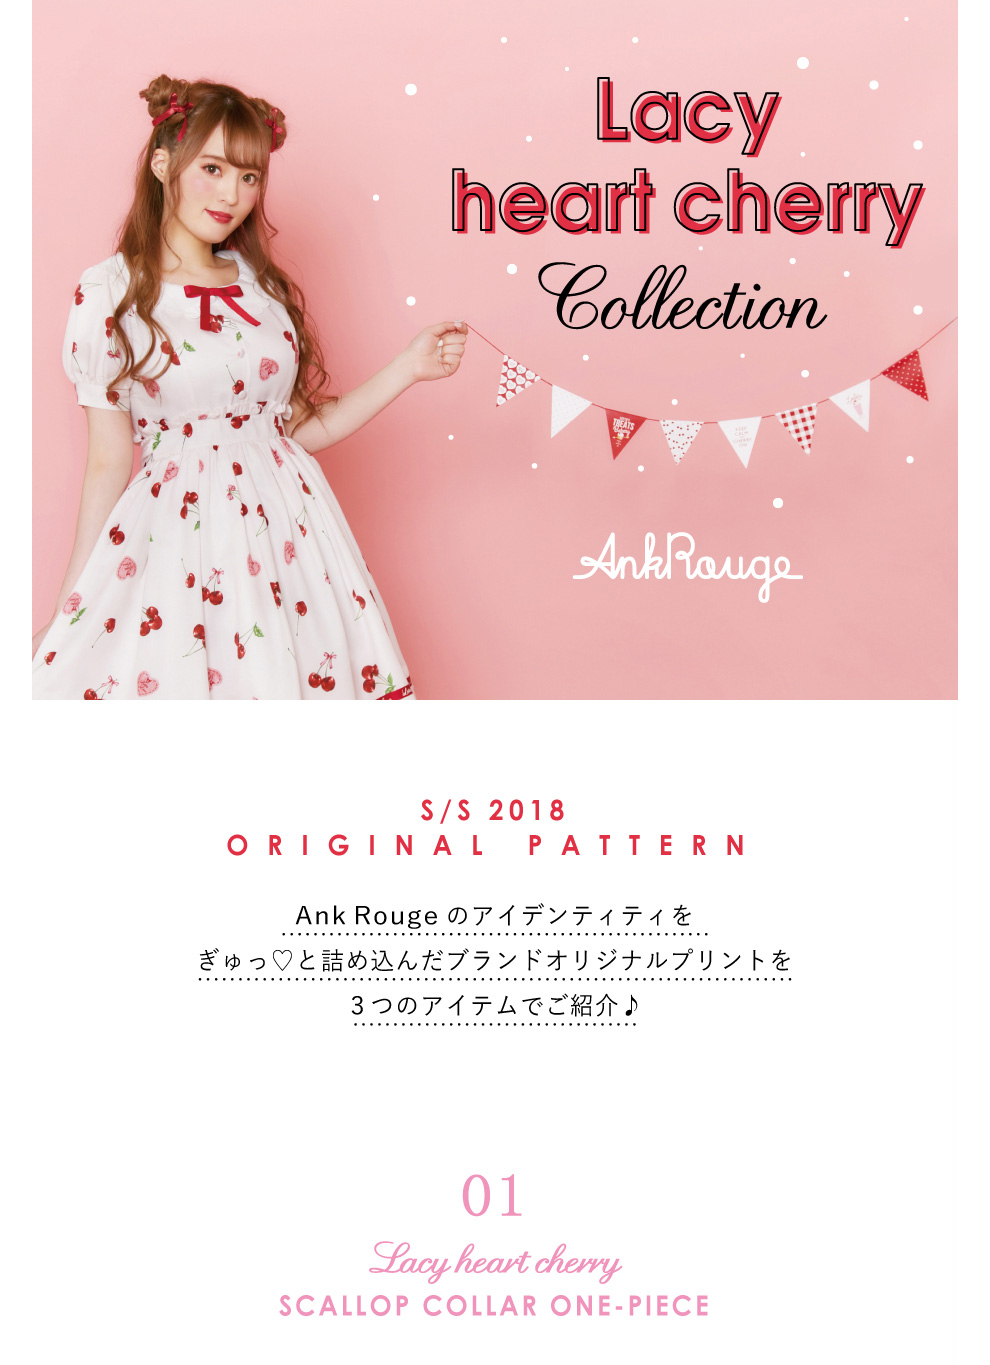 Lacy heart cherry Collection